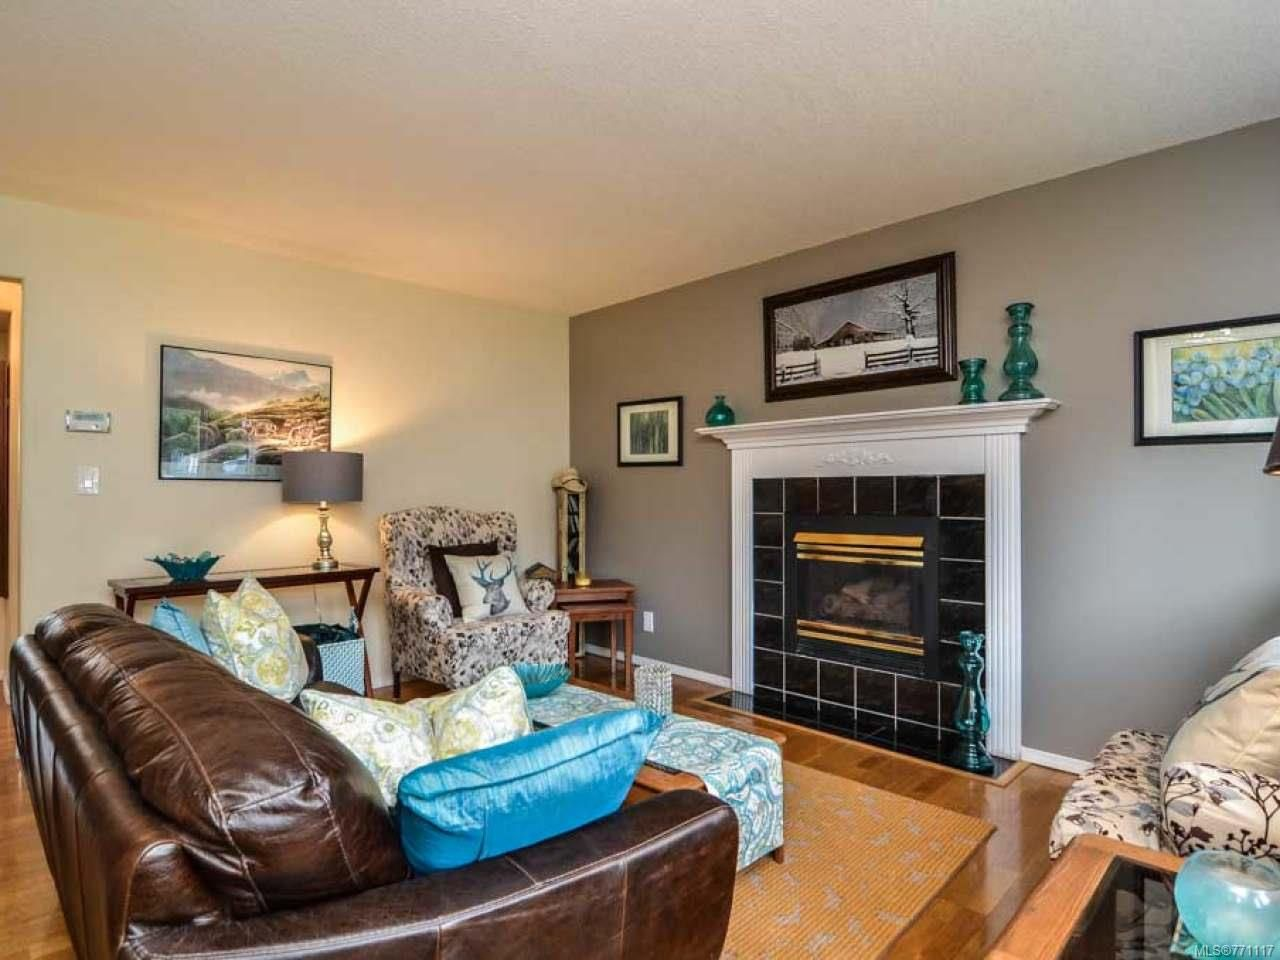 Photo 2: Photos: 697 Steenbuck Dr in CAMPBELL RIVER: CR Campbell River Central House for sale (Campbell River)  : MLS®# 771117